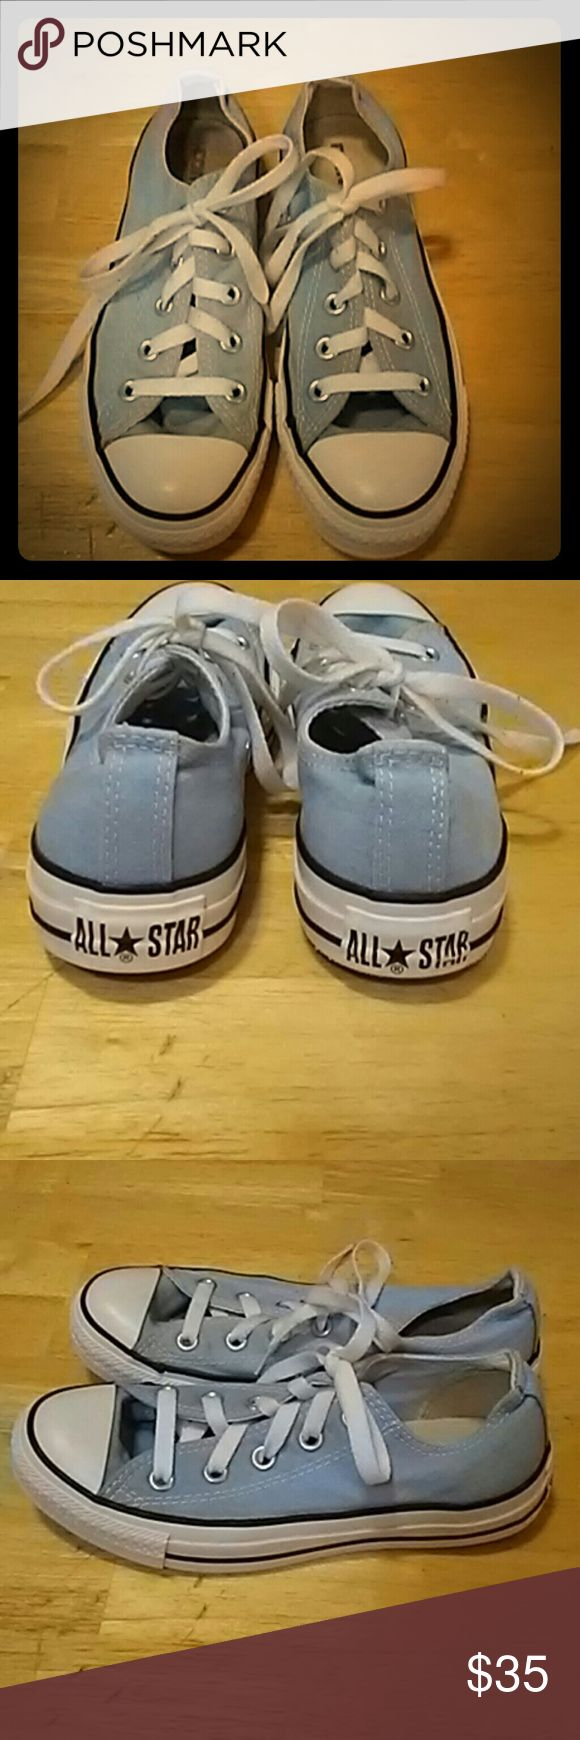 CONVERSE ALL STAR baby blu shoes / 6 awesome ALL STARS in baby blu. womens size 6. little wear on soles. excellent pre-owned condition.  REASONABLE OFFERS ACCEPTED THANK-YOU! ANY QUESTIONS?...JUST ASK CHECK OUT MY OTHER LISTINGS COVERSE ALL STAR Shoes Athletic Shoes